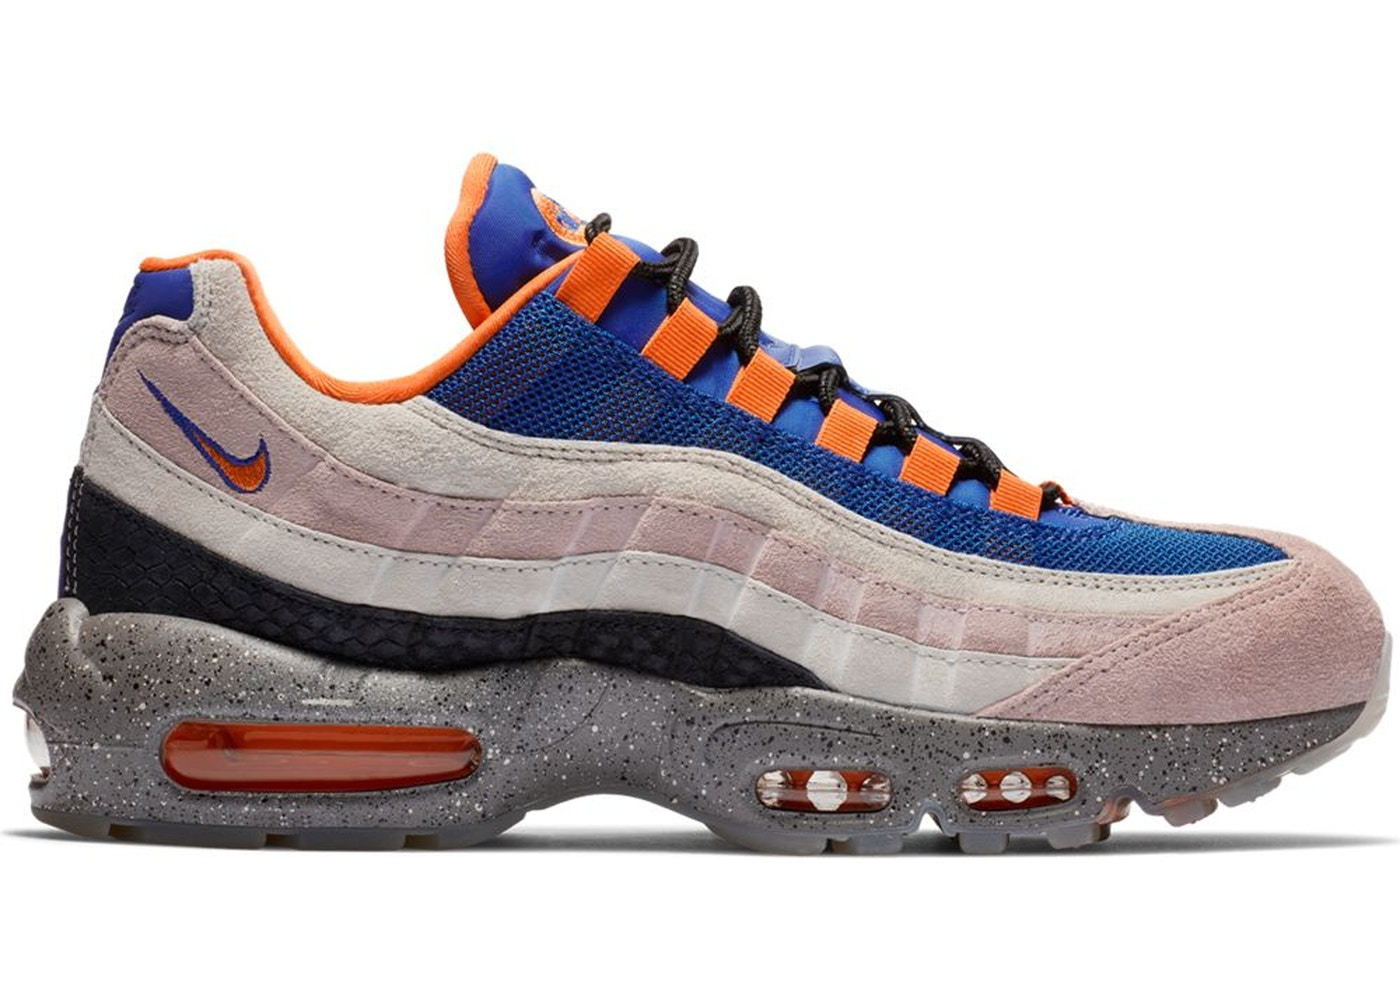 official photos e3201 e1f1b Buy Nike Air Max 95 Shoes  Deadstock Sneakers